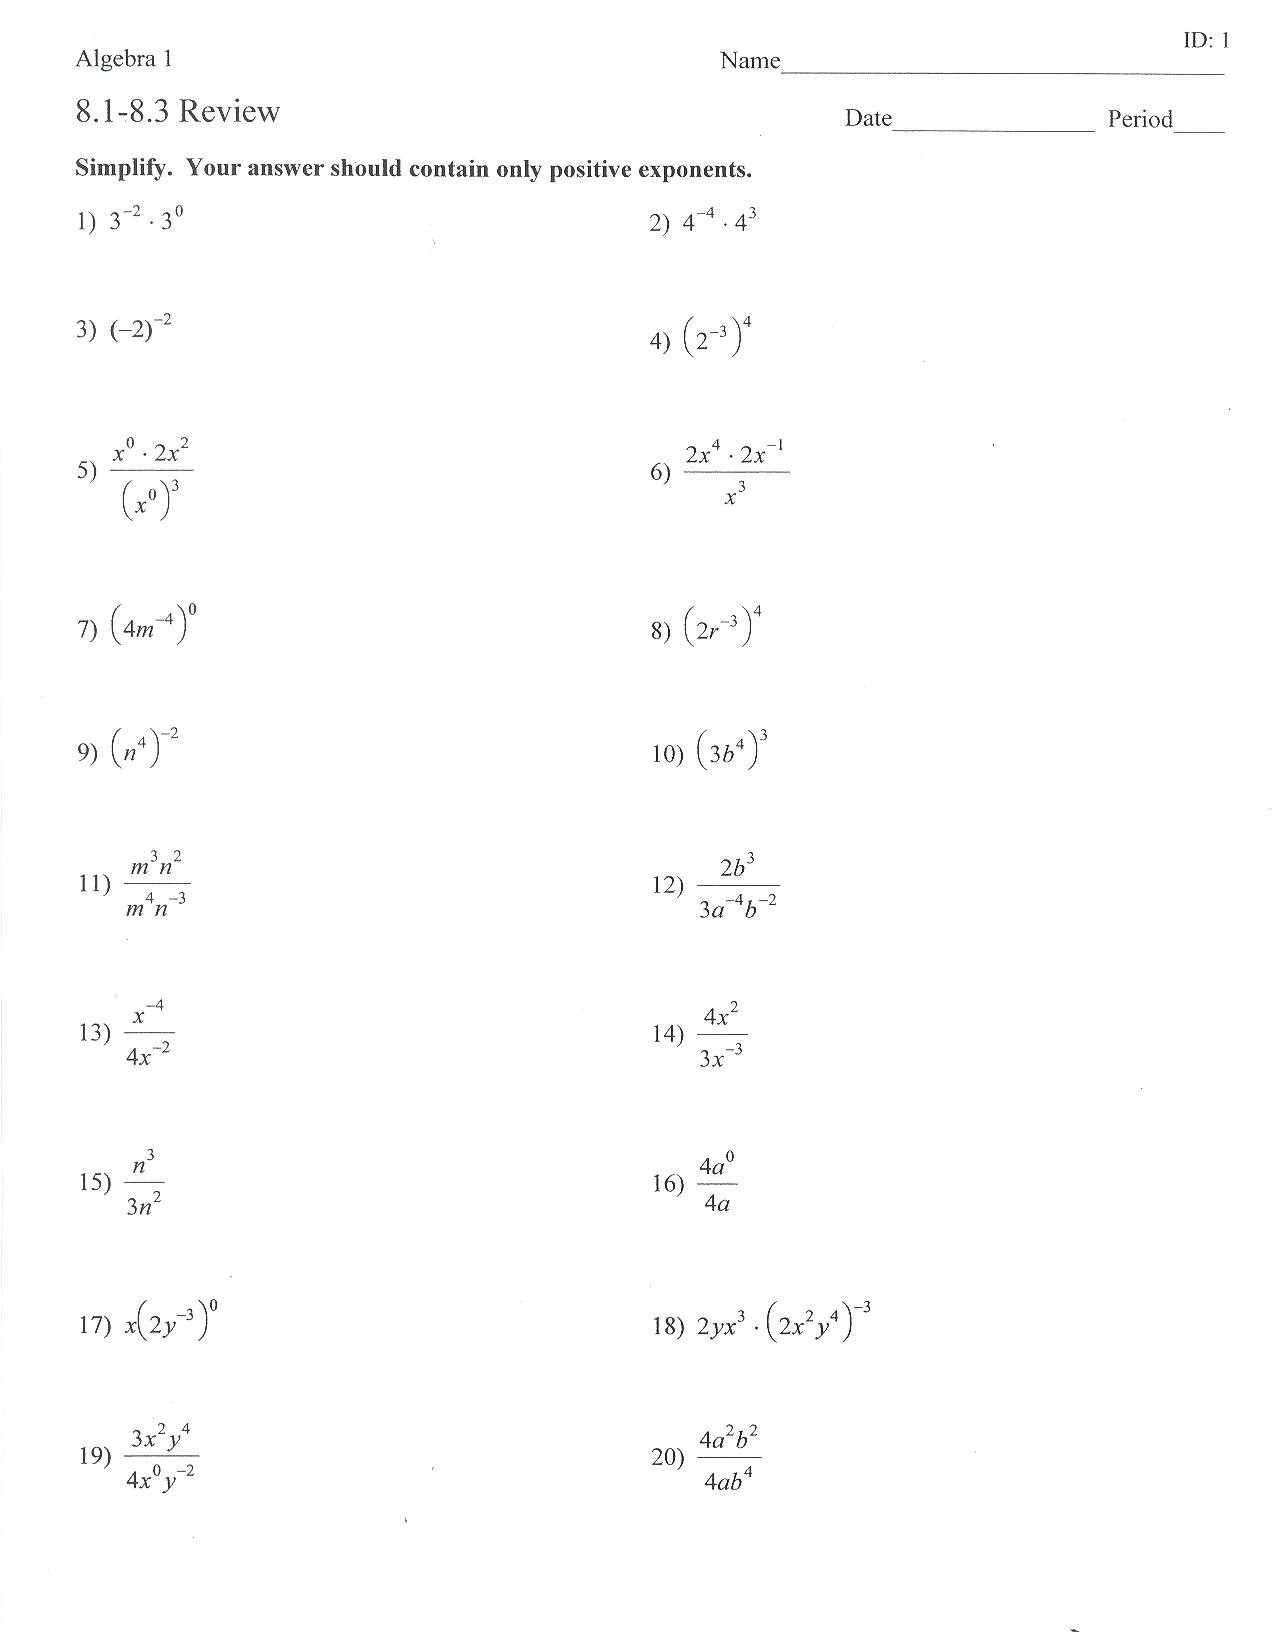 Properties Of Exponents Worksheet Answers 34 Negative Exponents Worksheet Answers Worksheet Project List